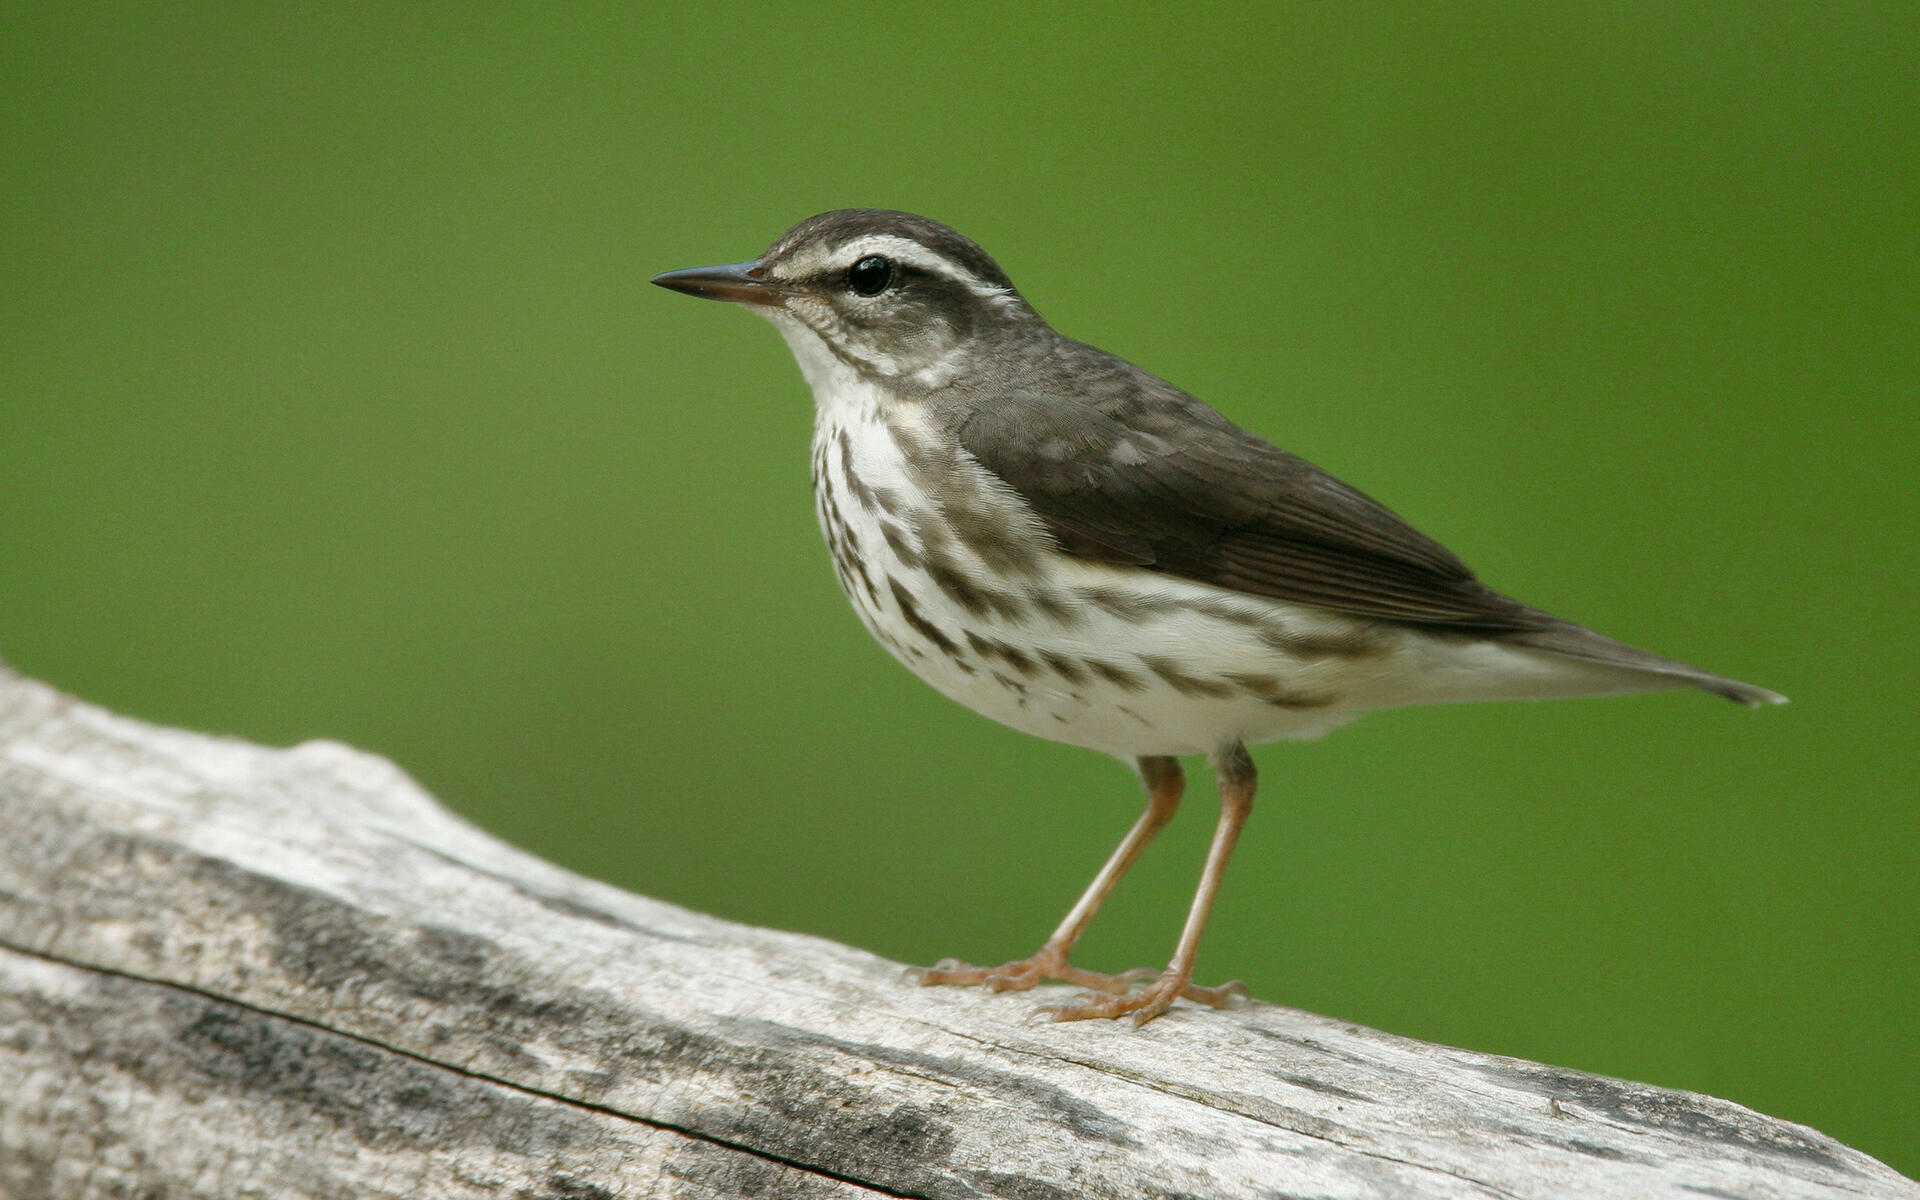 Louisiana%20Waterthrush%20s52-13-302_V.j